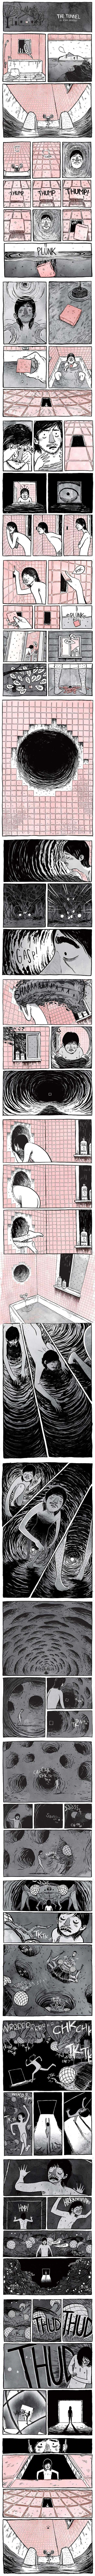 The Tunnel | By Ryan Andrews [Comic - Trippy - Illustration - Digital - Art]